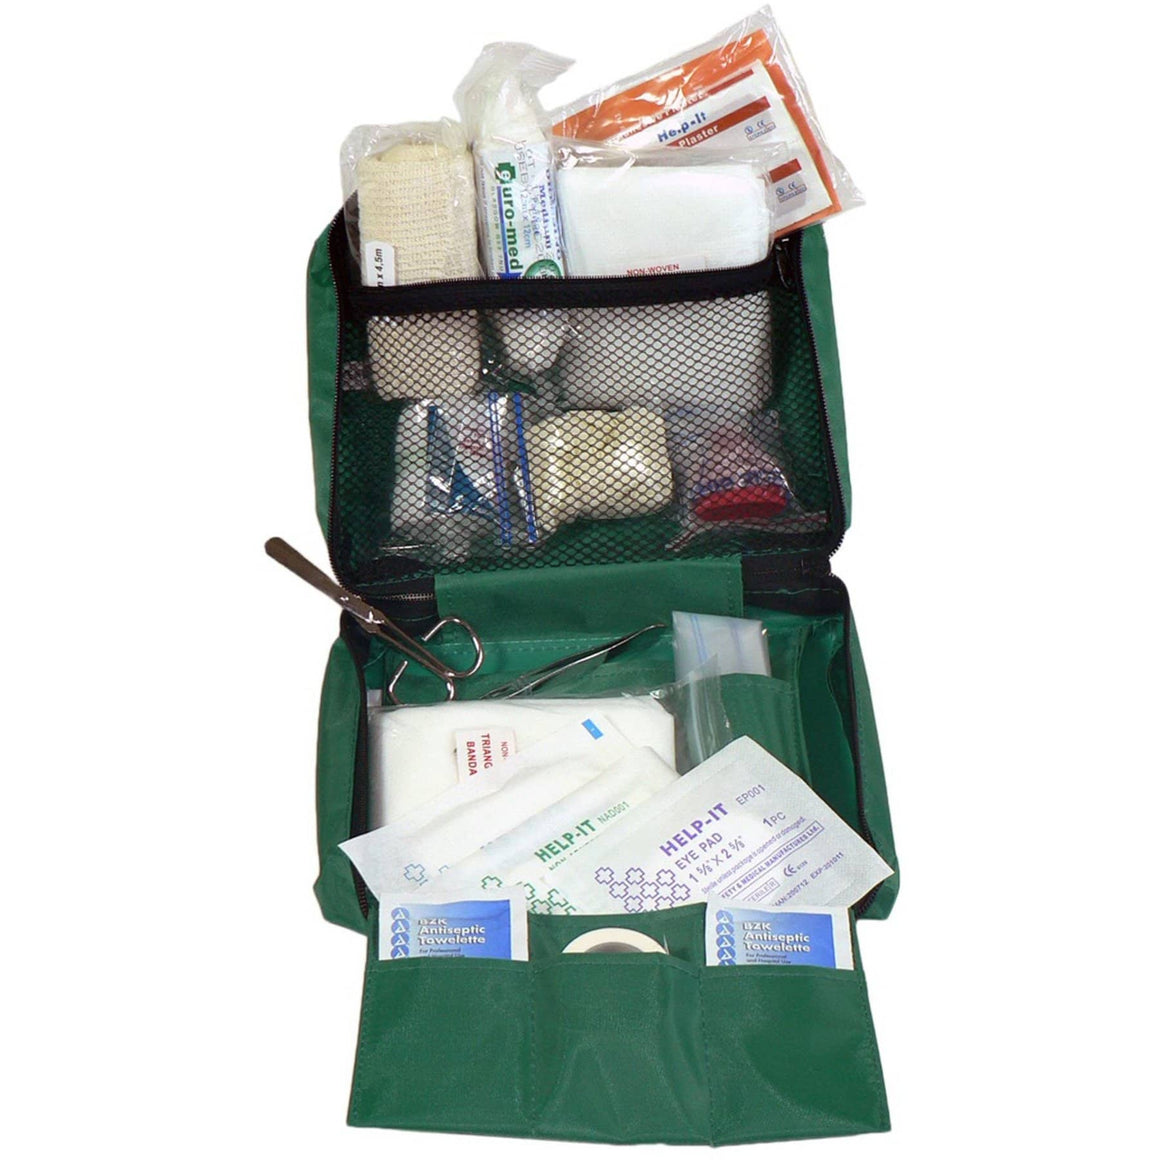 Help-It Lone Worker & Vehicle 1 First Aid Kit